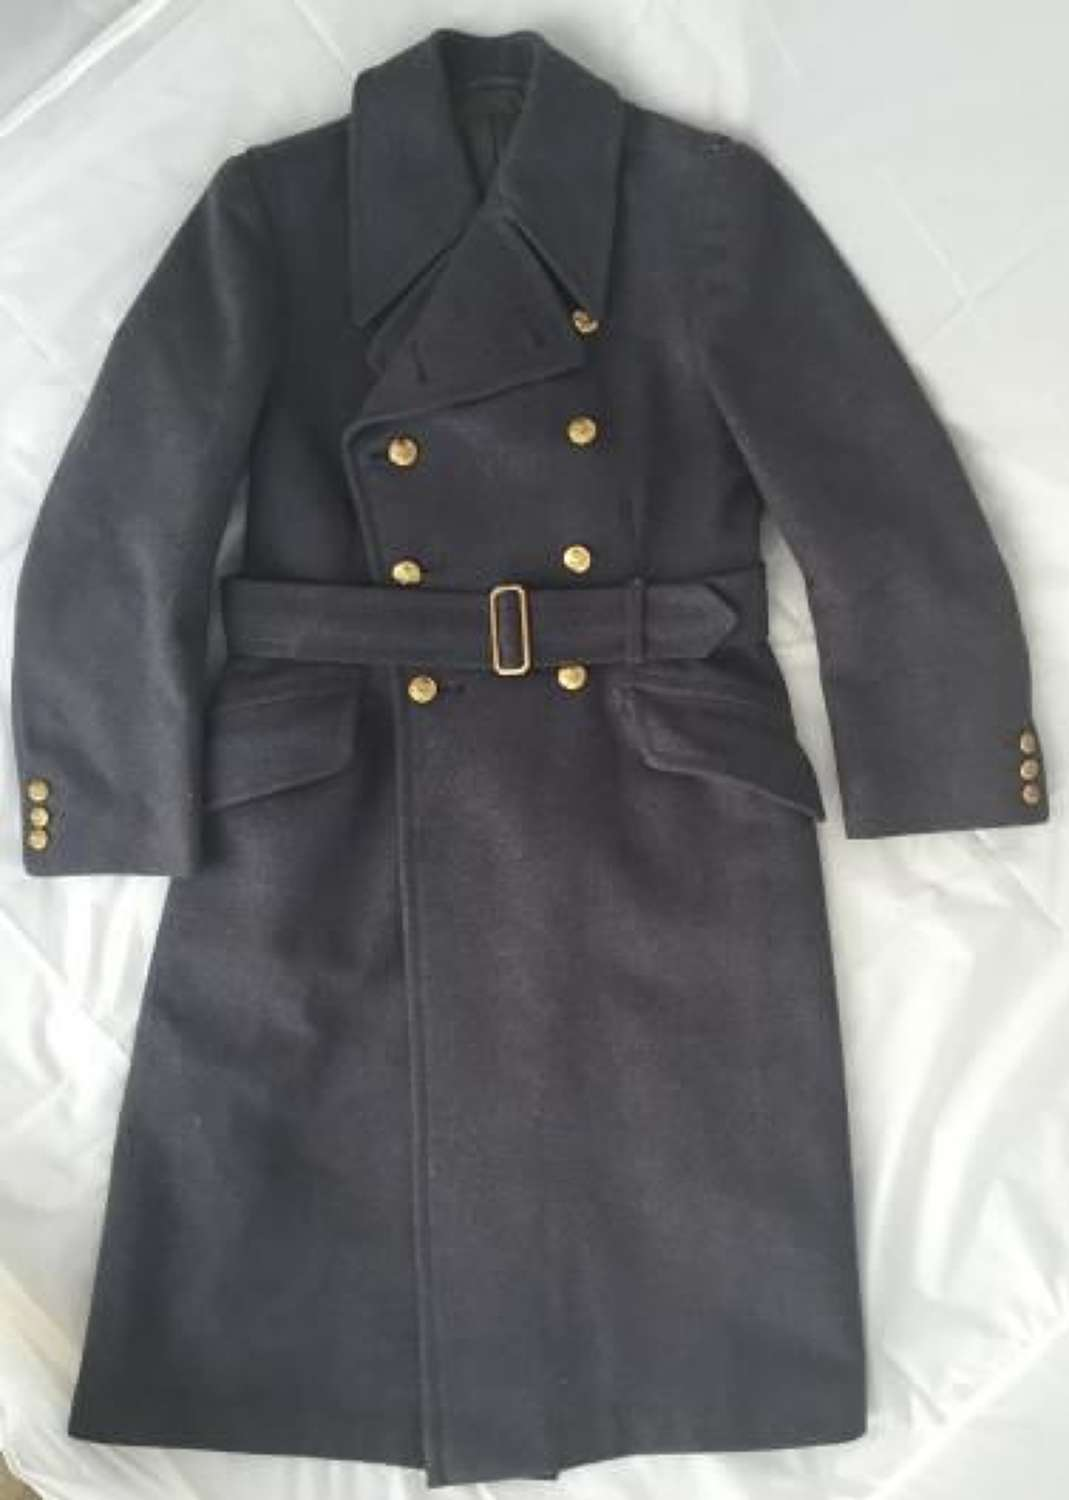 Orignal WW2 RAF Officers Greatcoat